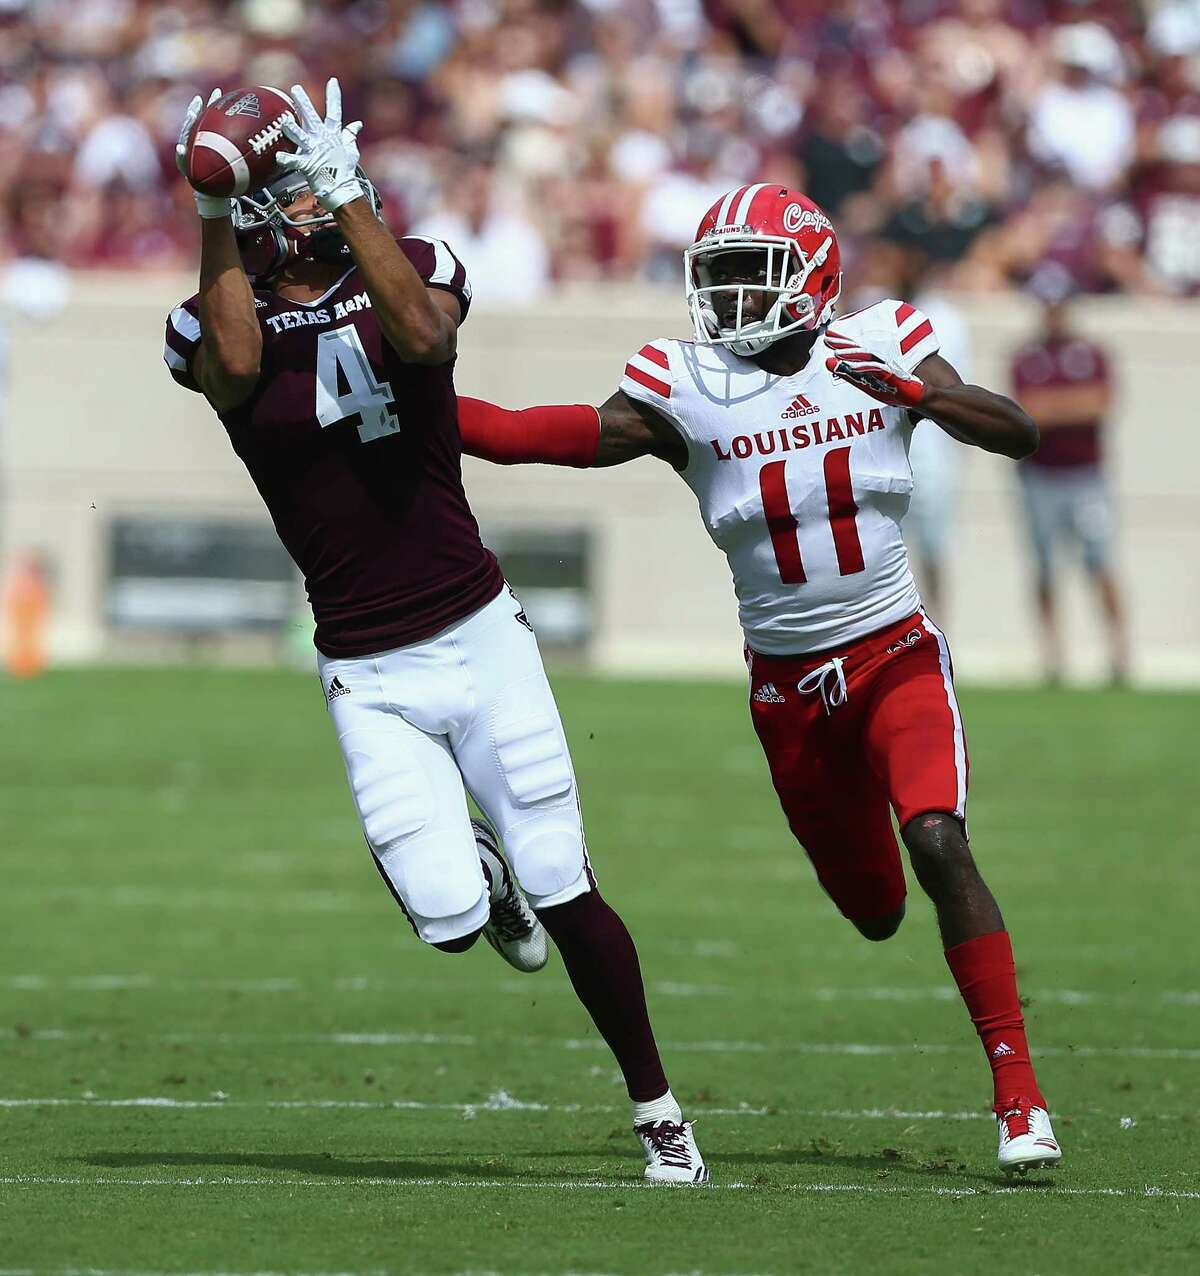 COLLEGE STATION, TX - SEPTEMBER 16: Damion Ratley #4 of the Texas A&M Aggies makes a catch as he gets behind Lorenzo Cryer #11 of the Louisiana-Lafayette Ragin Cajuns at Kyle Field on September 16, 2017 in College Station, Texas.